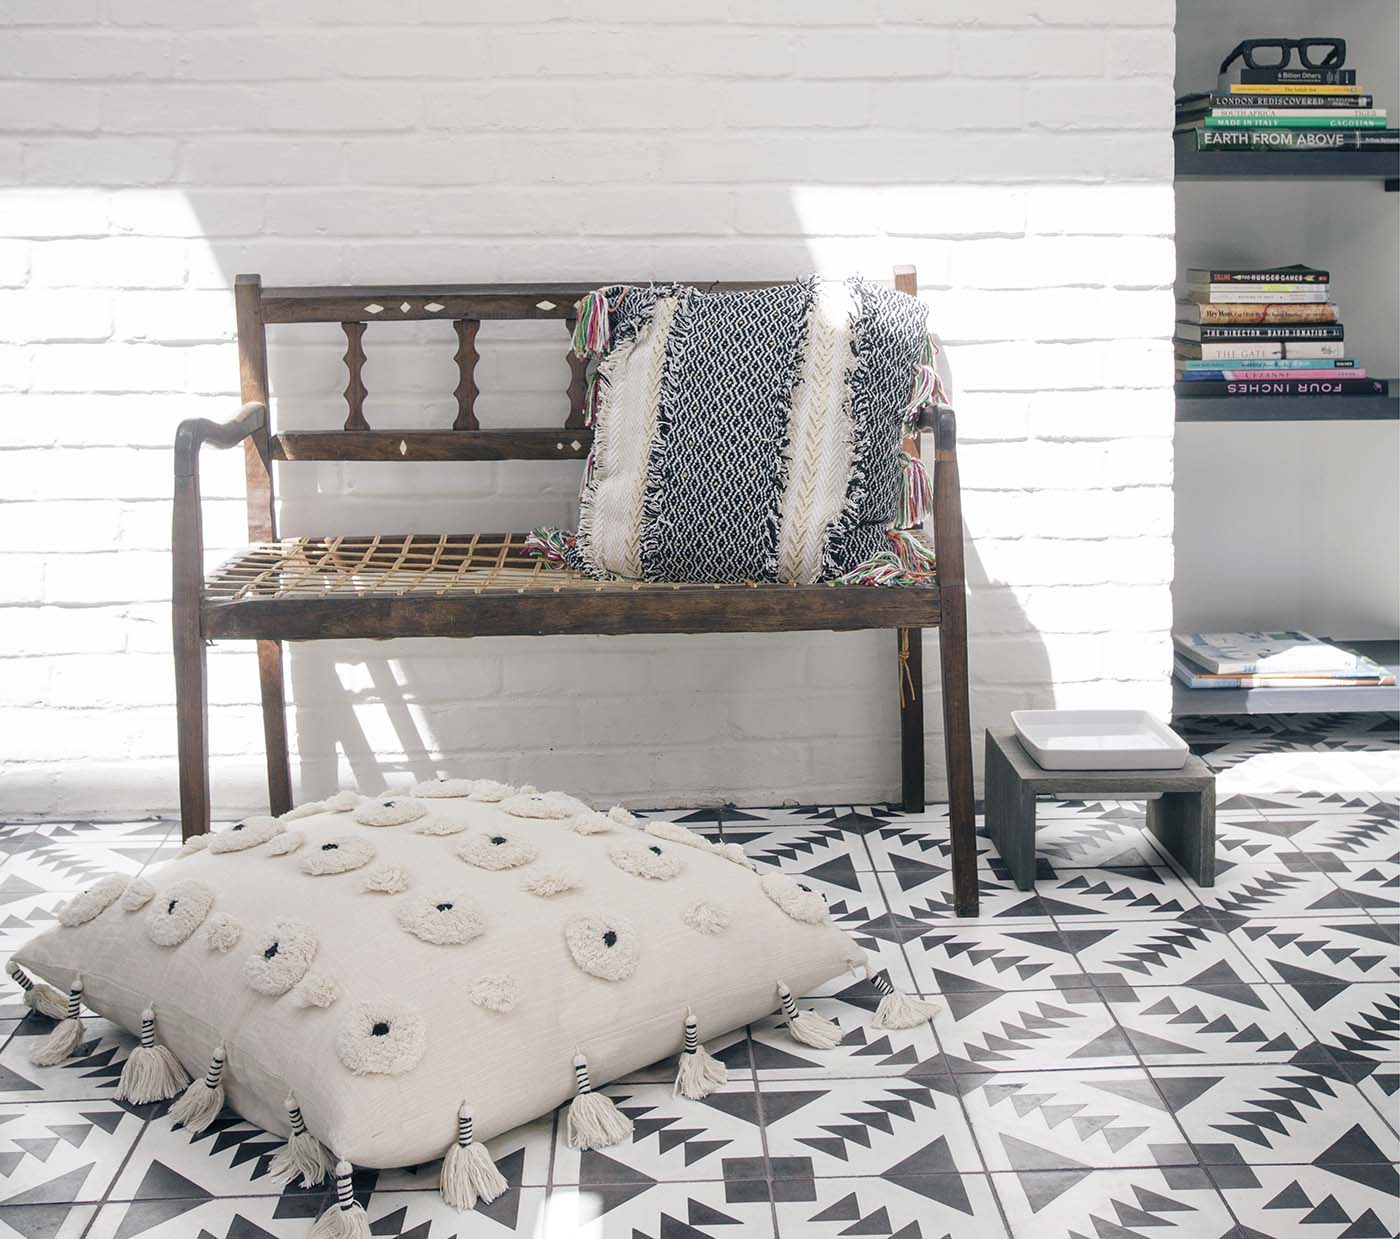 close up of black and white tiles, pillow and wooden chair